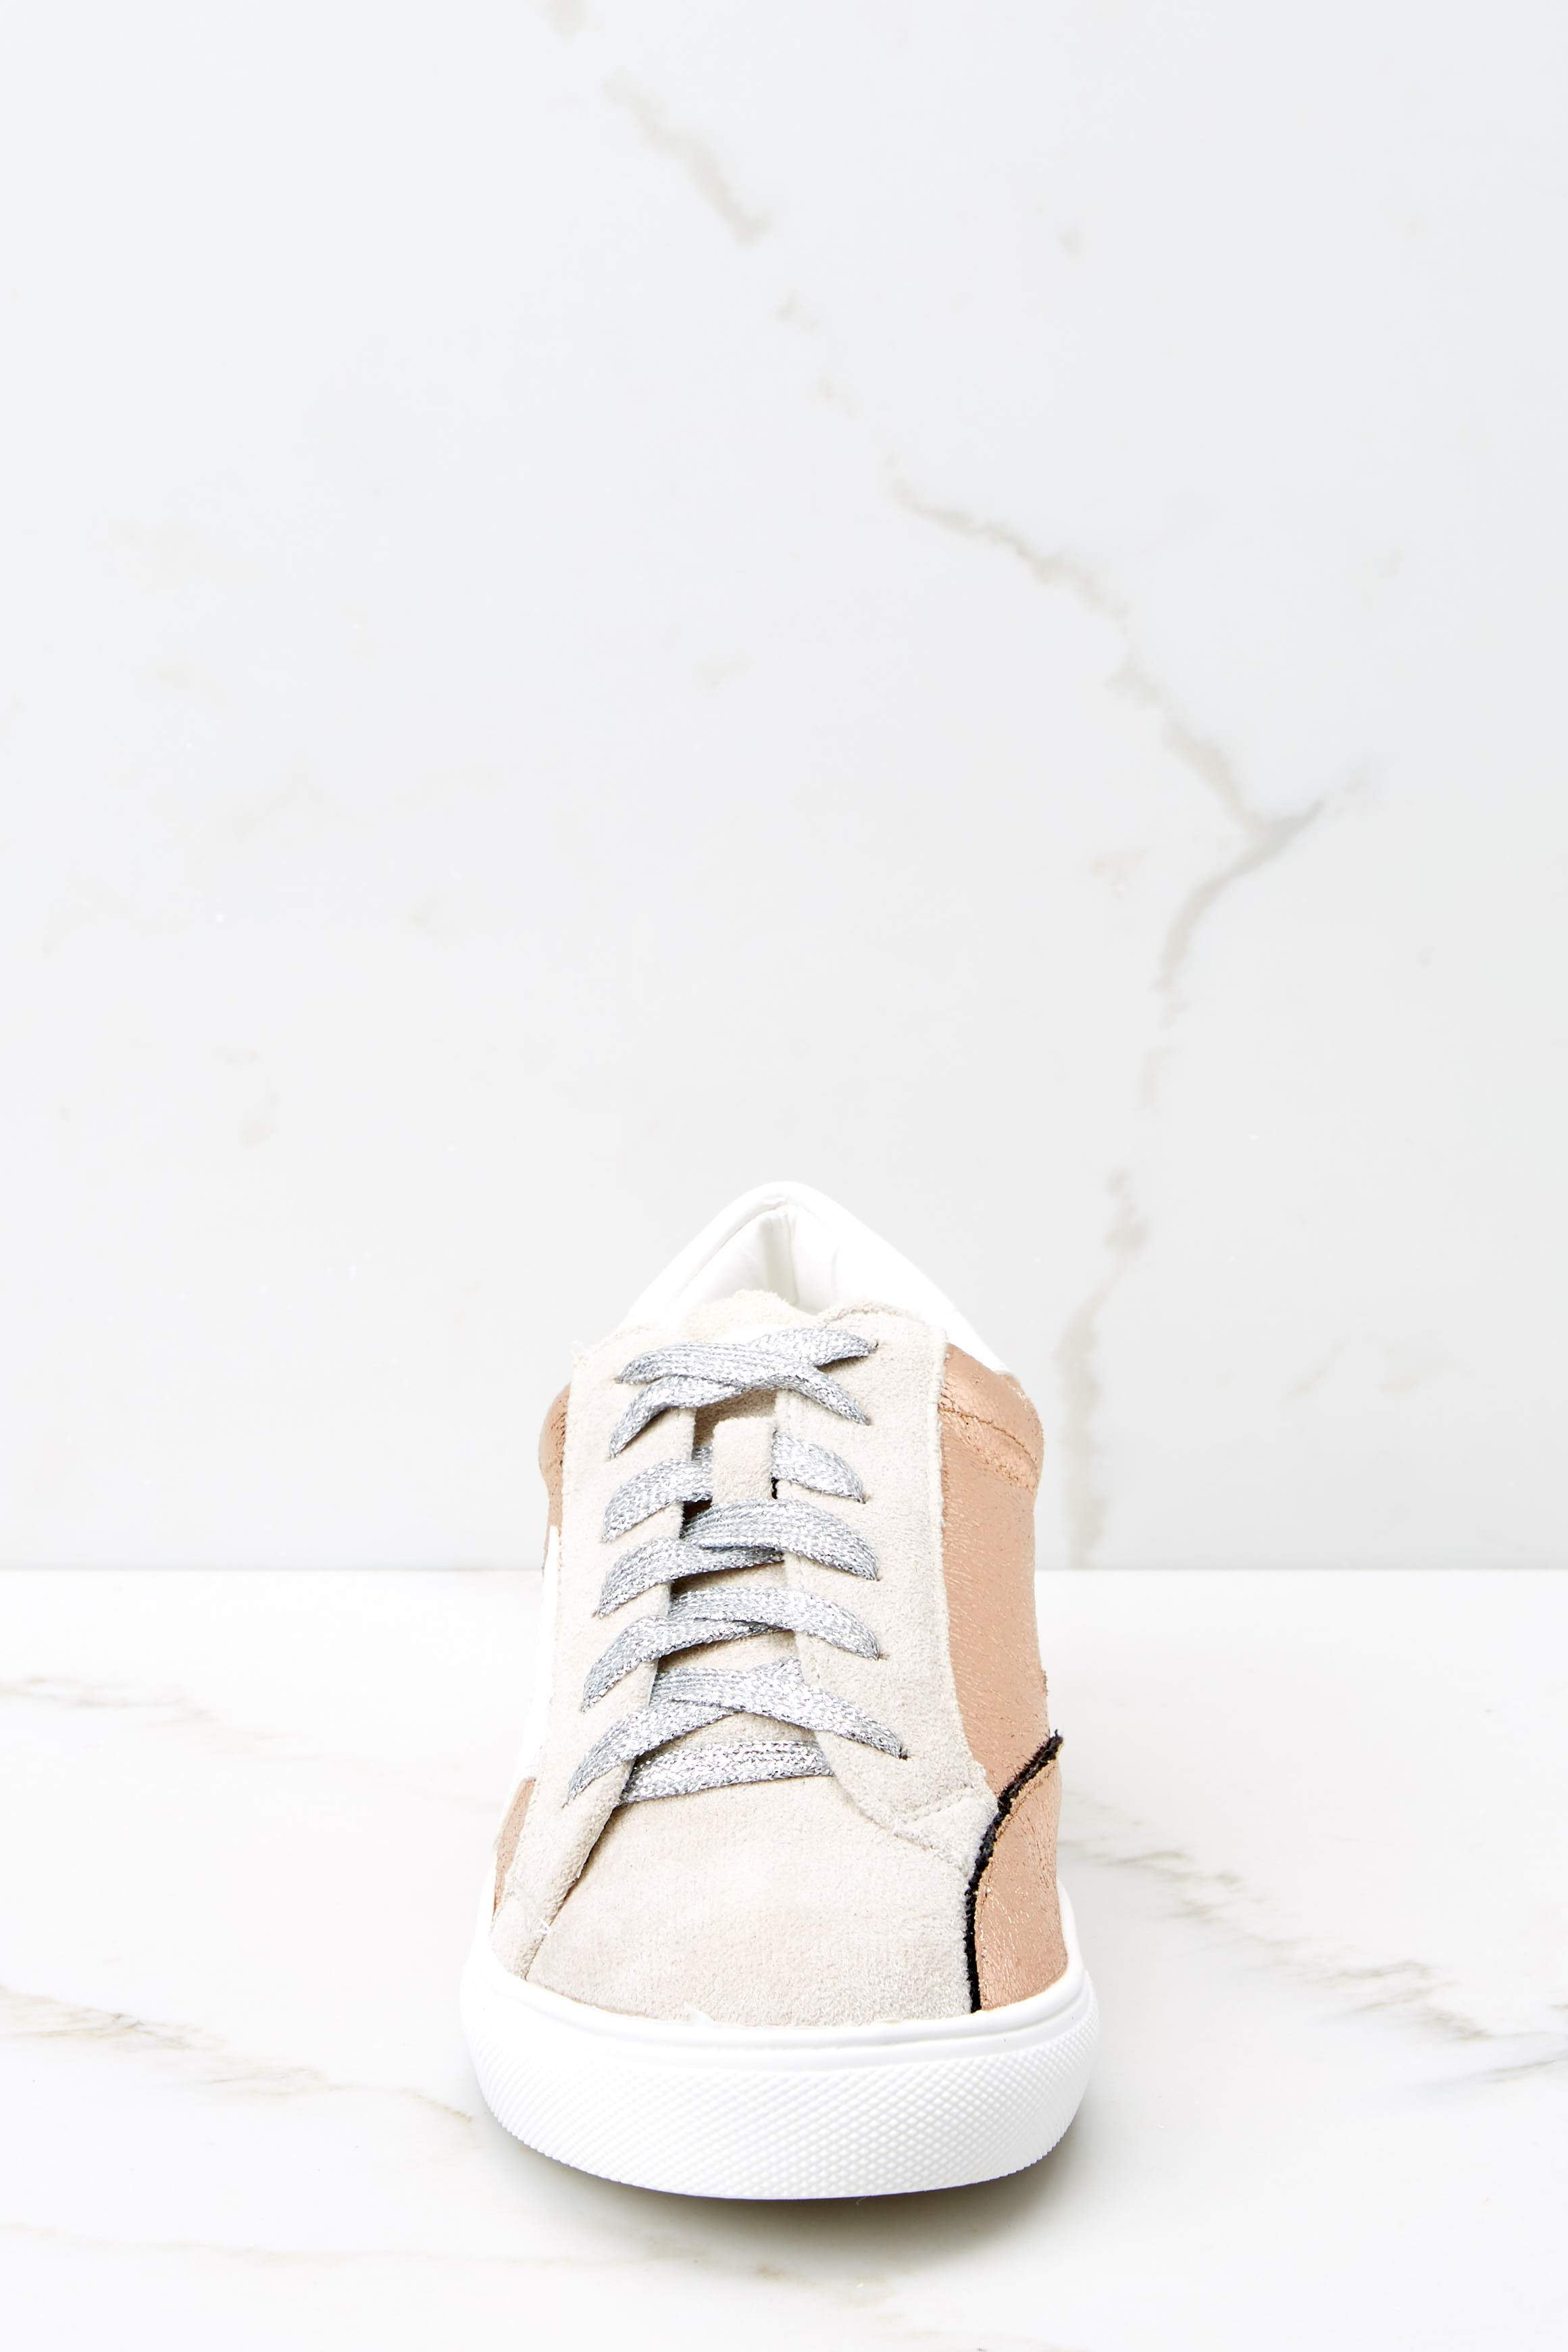 Getting Better Rose Gold Sneakers (BACKORDER PENDING)